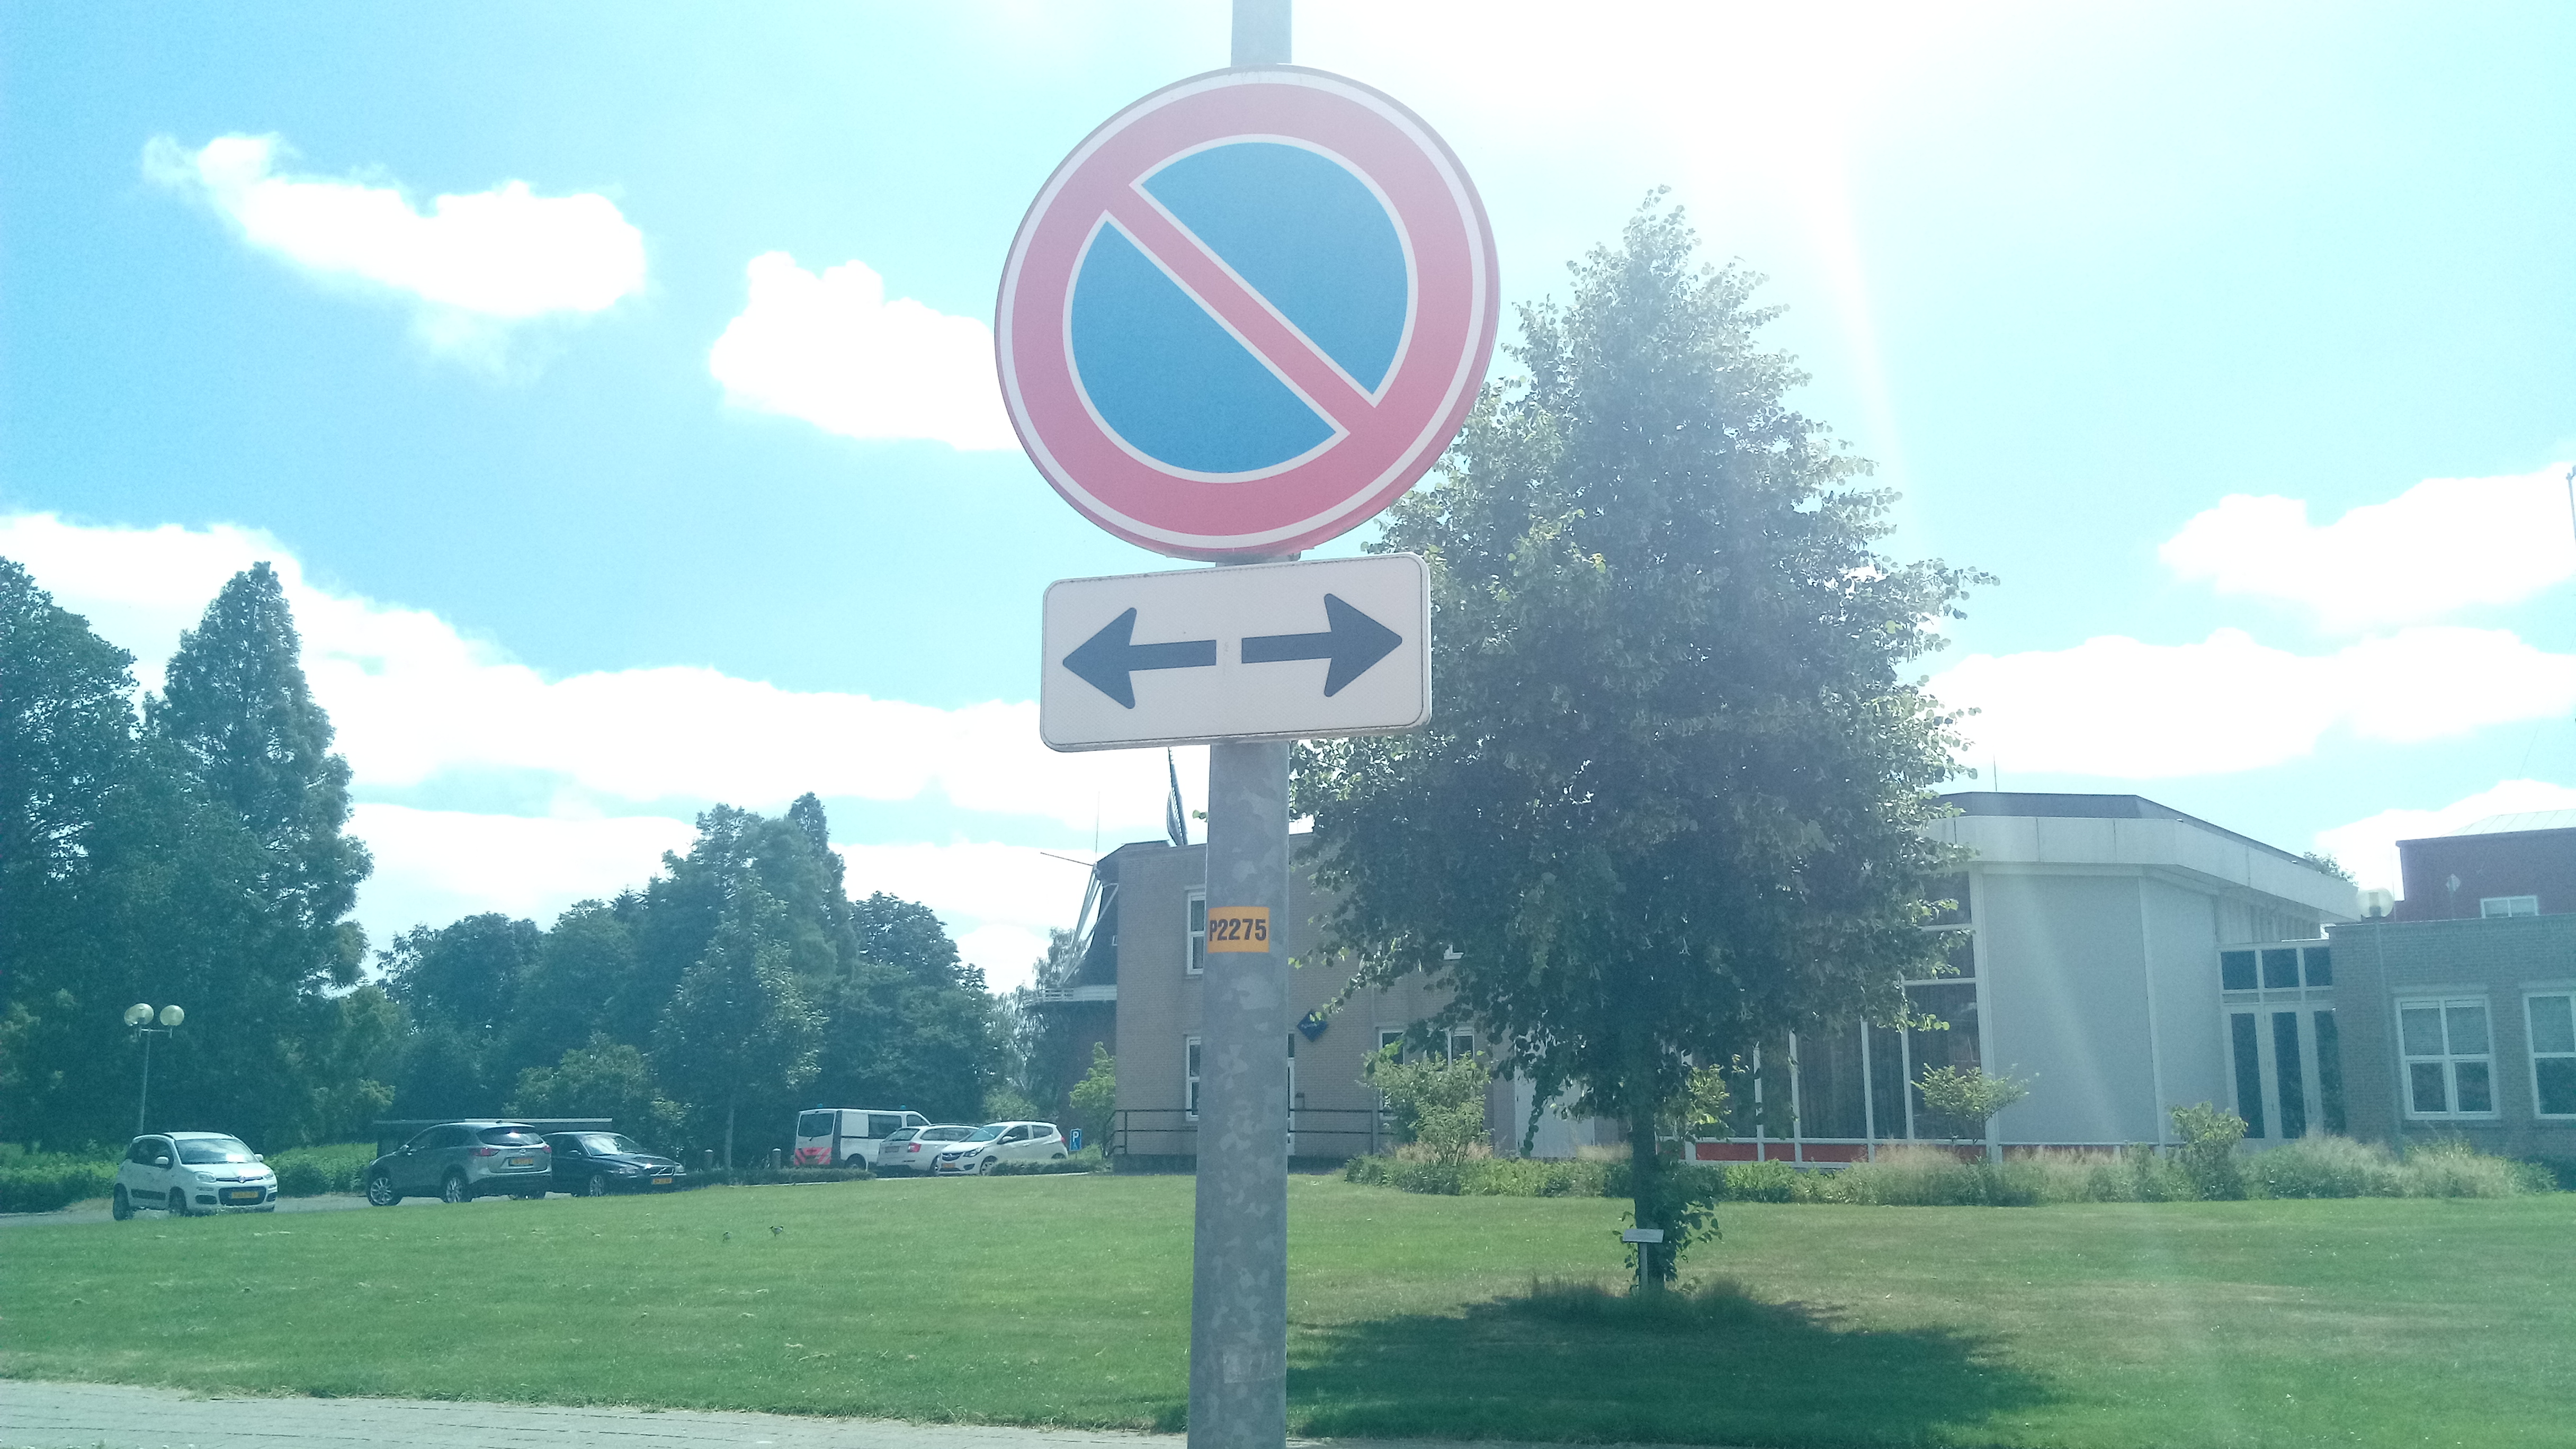 File:No parking sign with arrows pointing to the left and